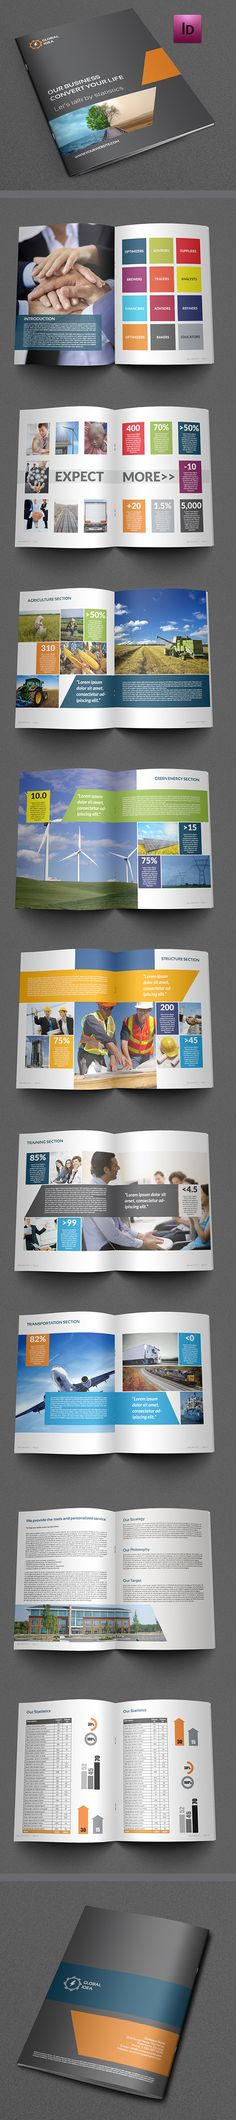 Buy Corporate Brochure Template - 20 Pages by OWPictures on GraphicRiver. Brochure Description : Corporate Business Brochure Template – 20 Pages that is super simple to edit and custom. Corporate Brochure Design, Company Brochure, Brochure Layout, Business Brochure, Brochure Template, Branding Design, Brochure Ideas, Cv Design, Indesign Templates